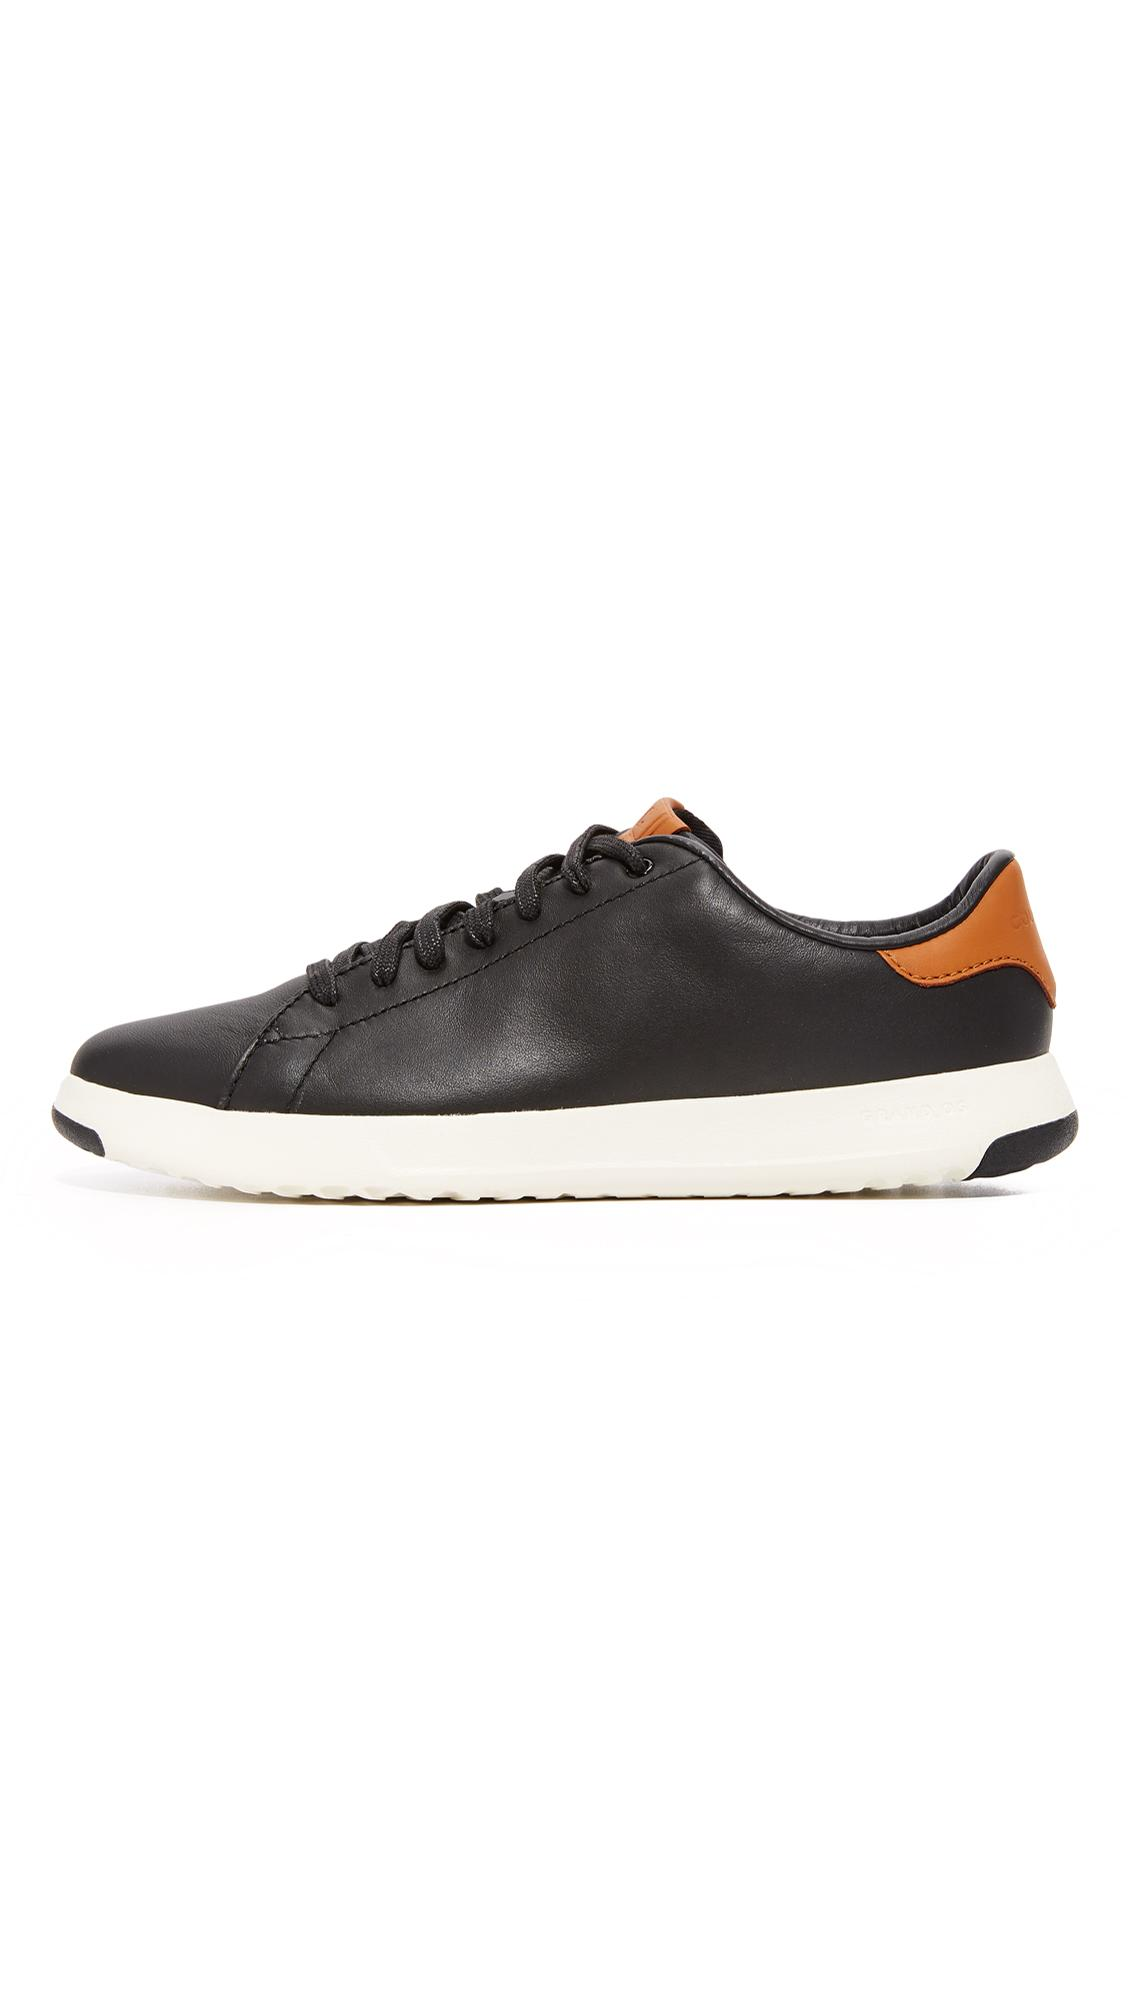 Kenneth Cole Black Tennis Shoes